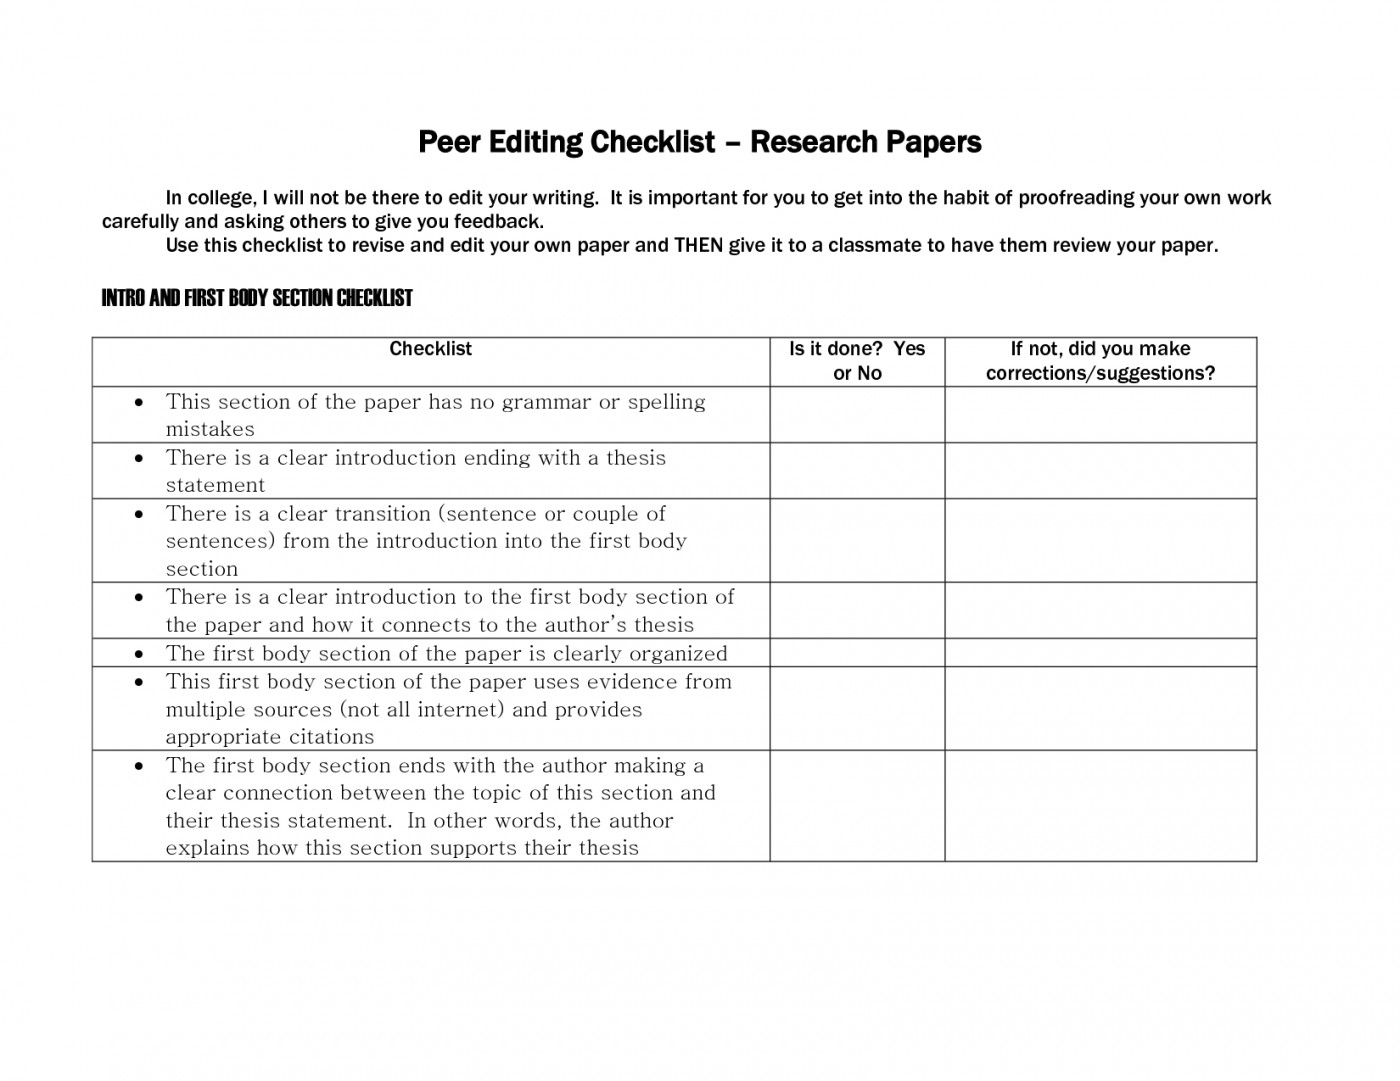 009 Ideas Of Research Paper Peer Edit Sheet Excellent Editing Worksheet Best Software Free Download Writing Services In India 1400